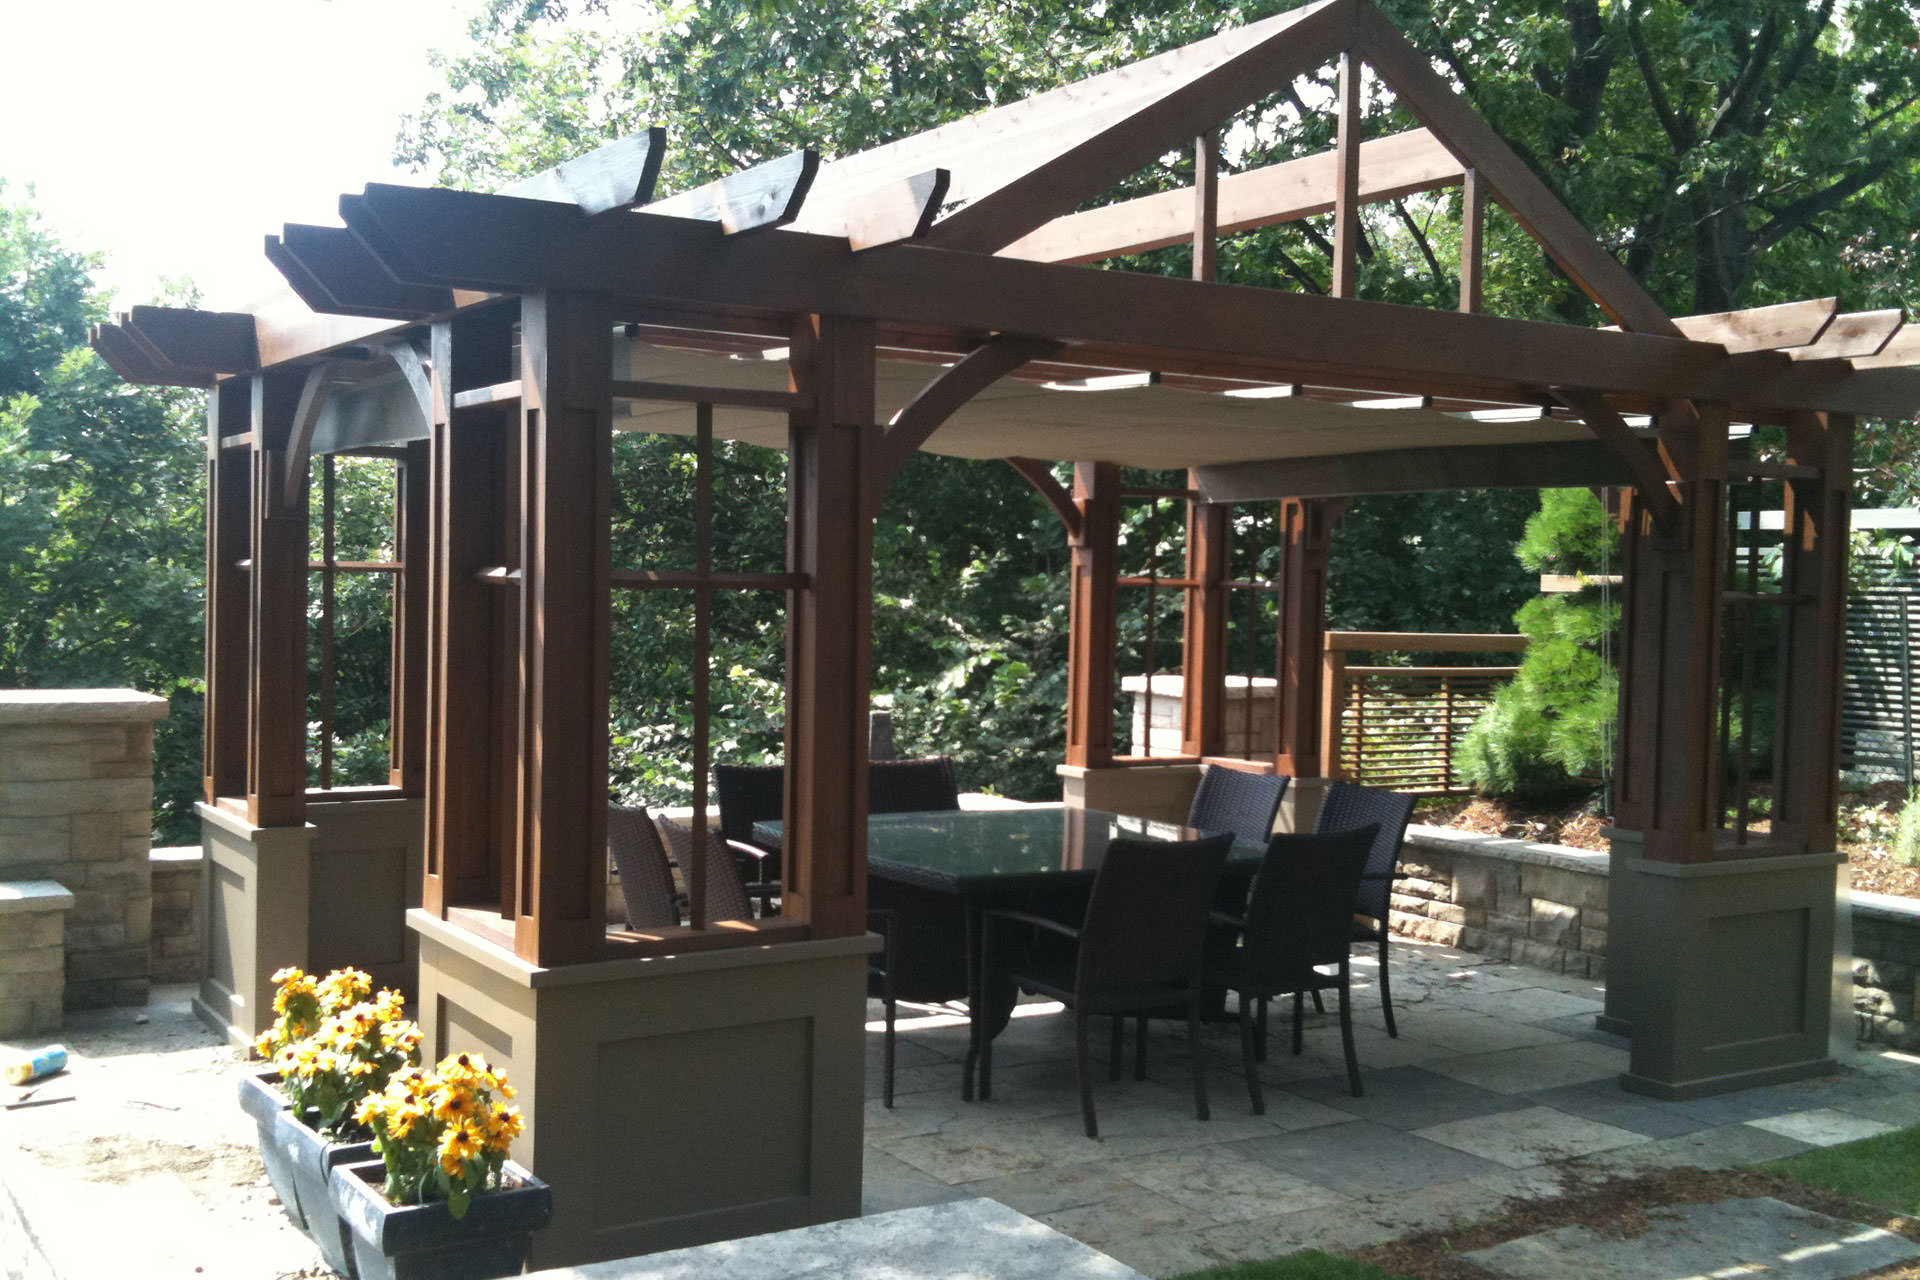 Adirondack chair patterns for sale shedstore delivery design plans average joes pergola depot is your source for affordable quality do it yourself pergola kits pergola plans pergola designs and everything pergolas solutioingenieria Images